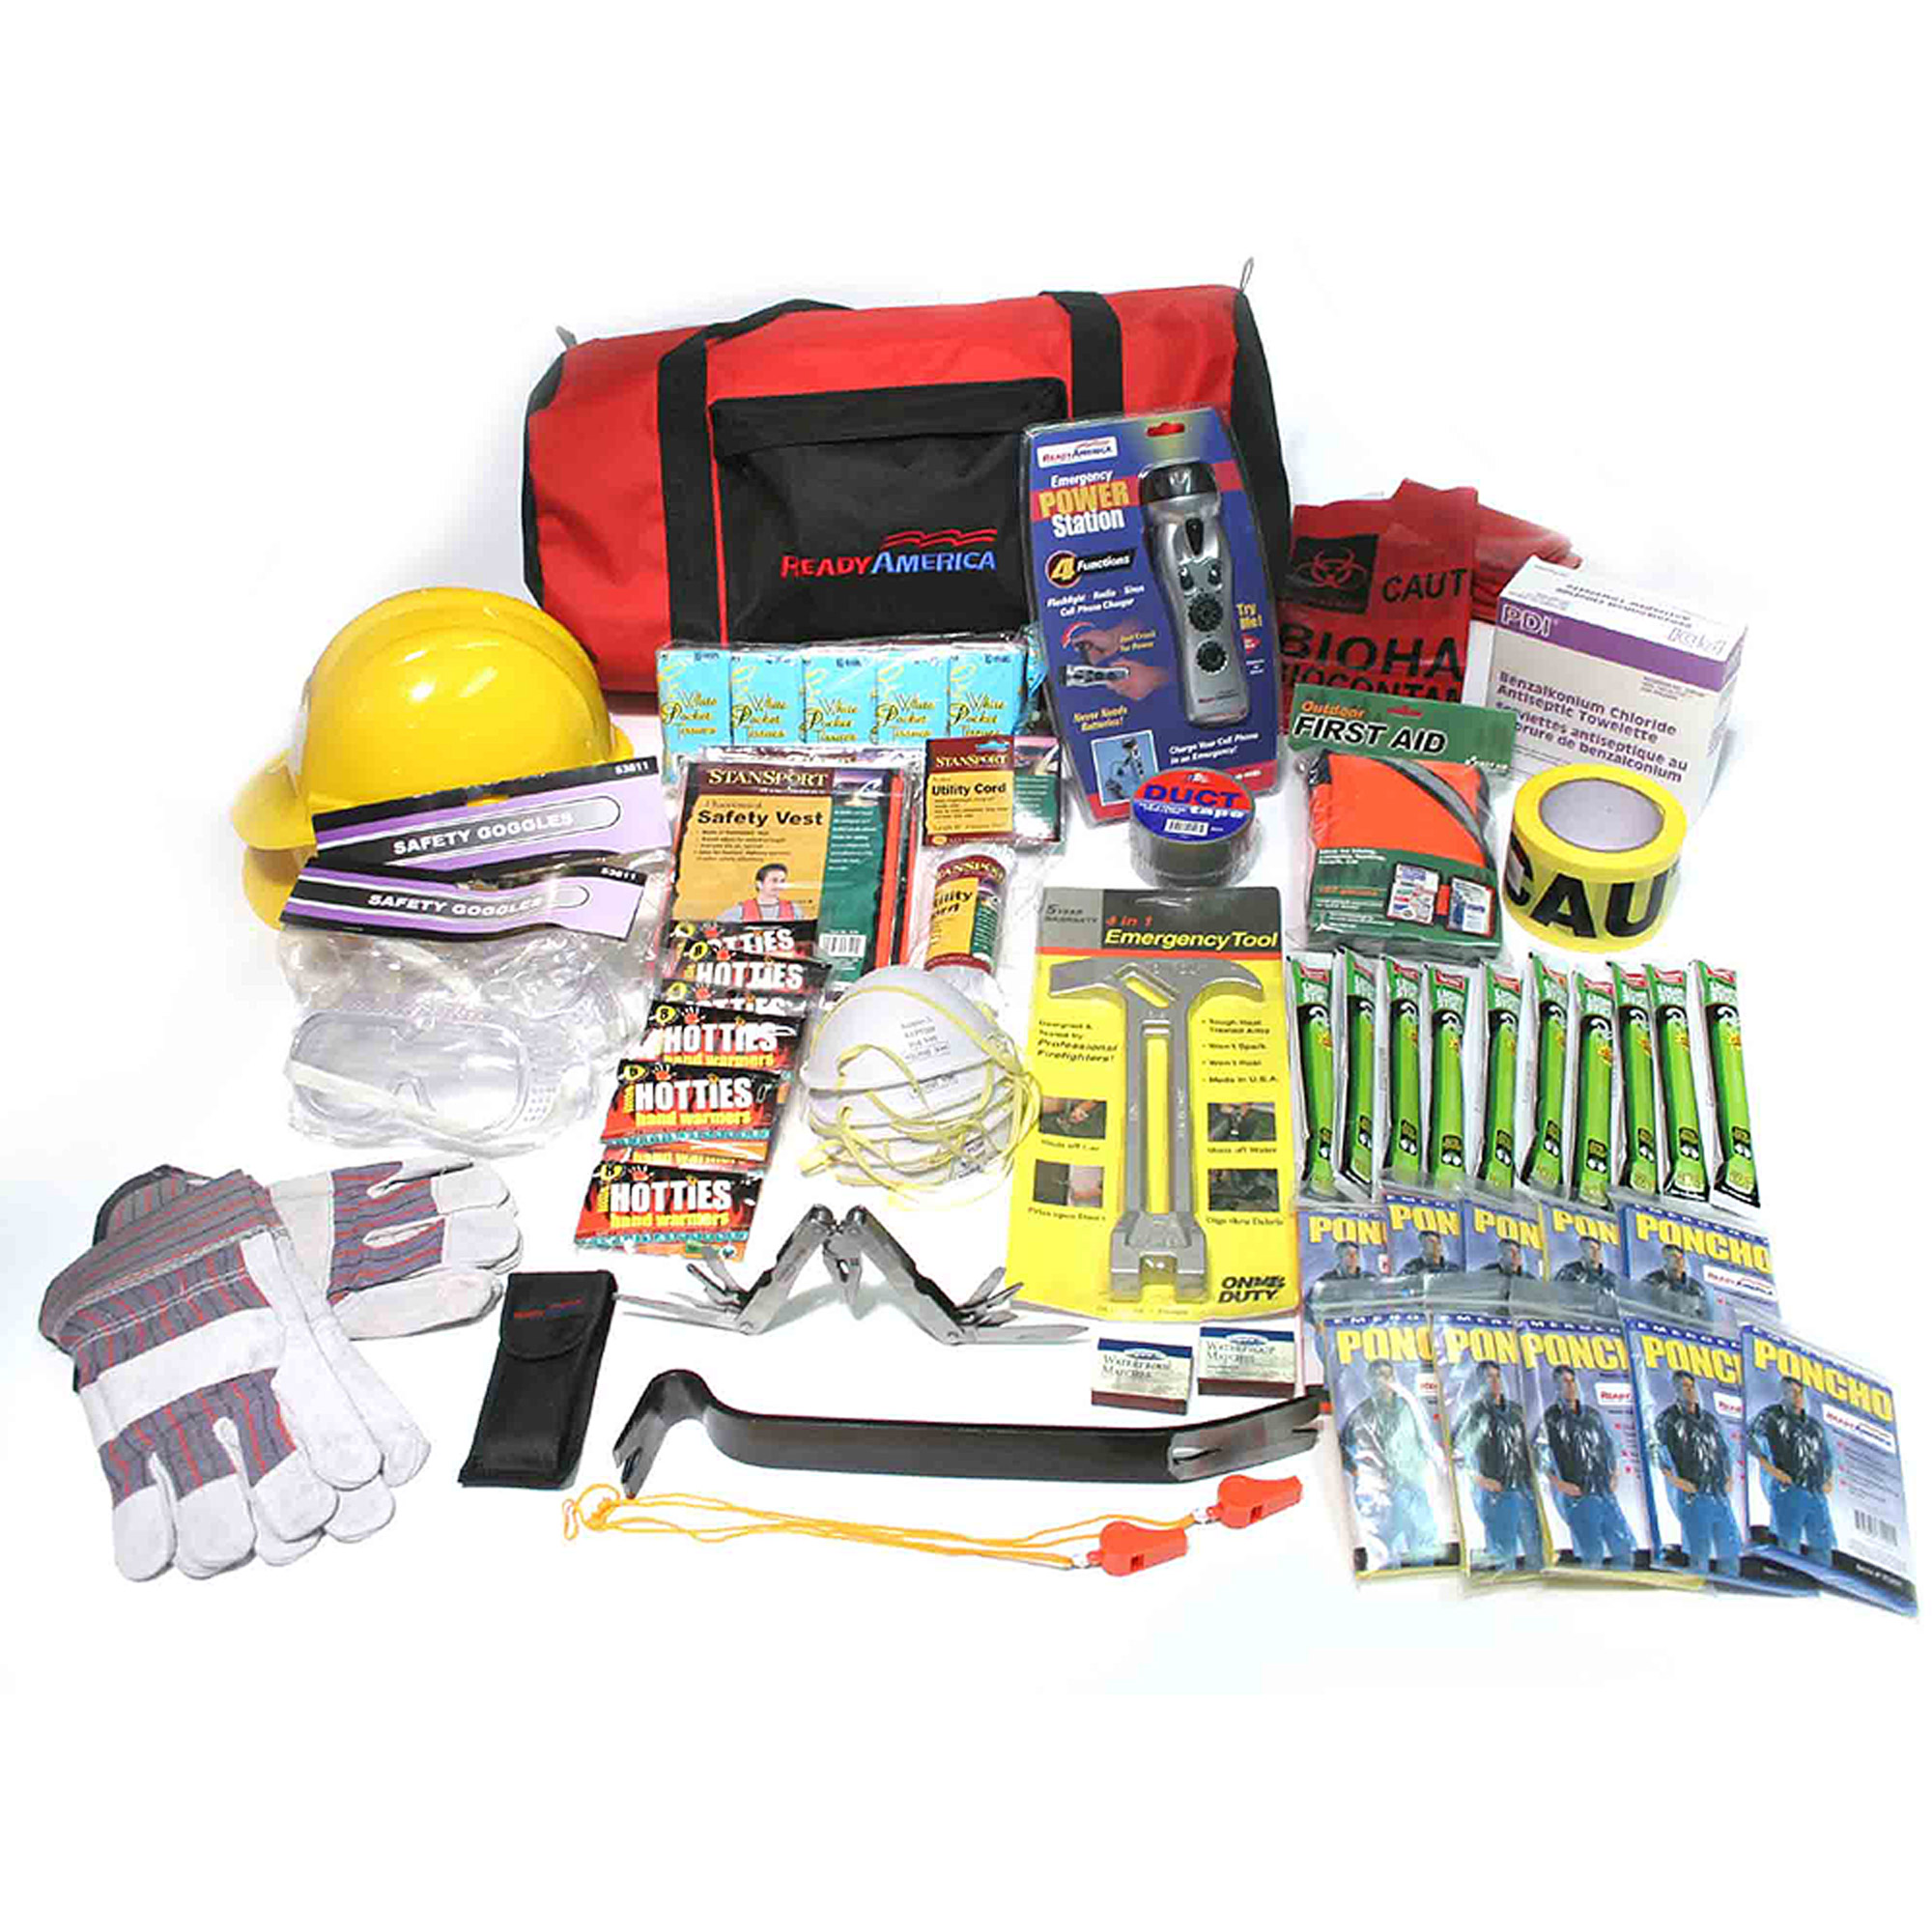 Ready America Site Safety Kit